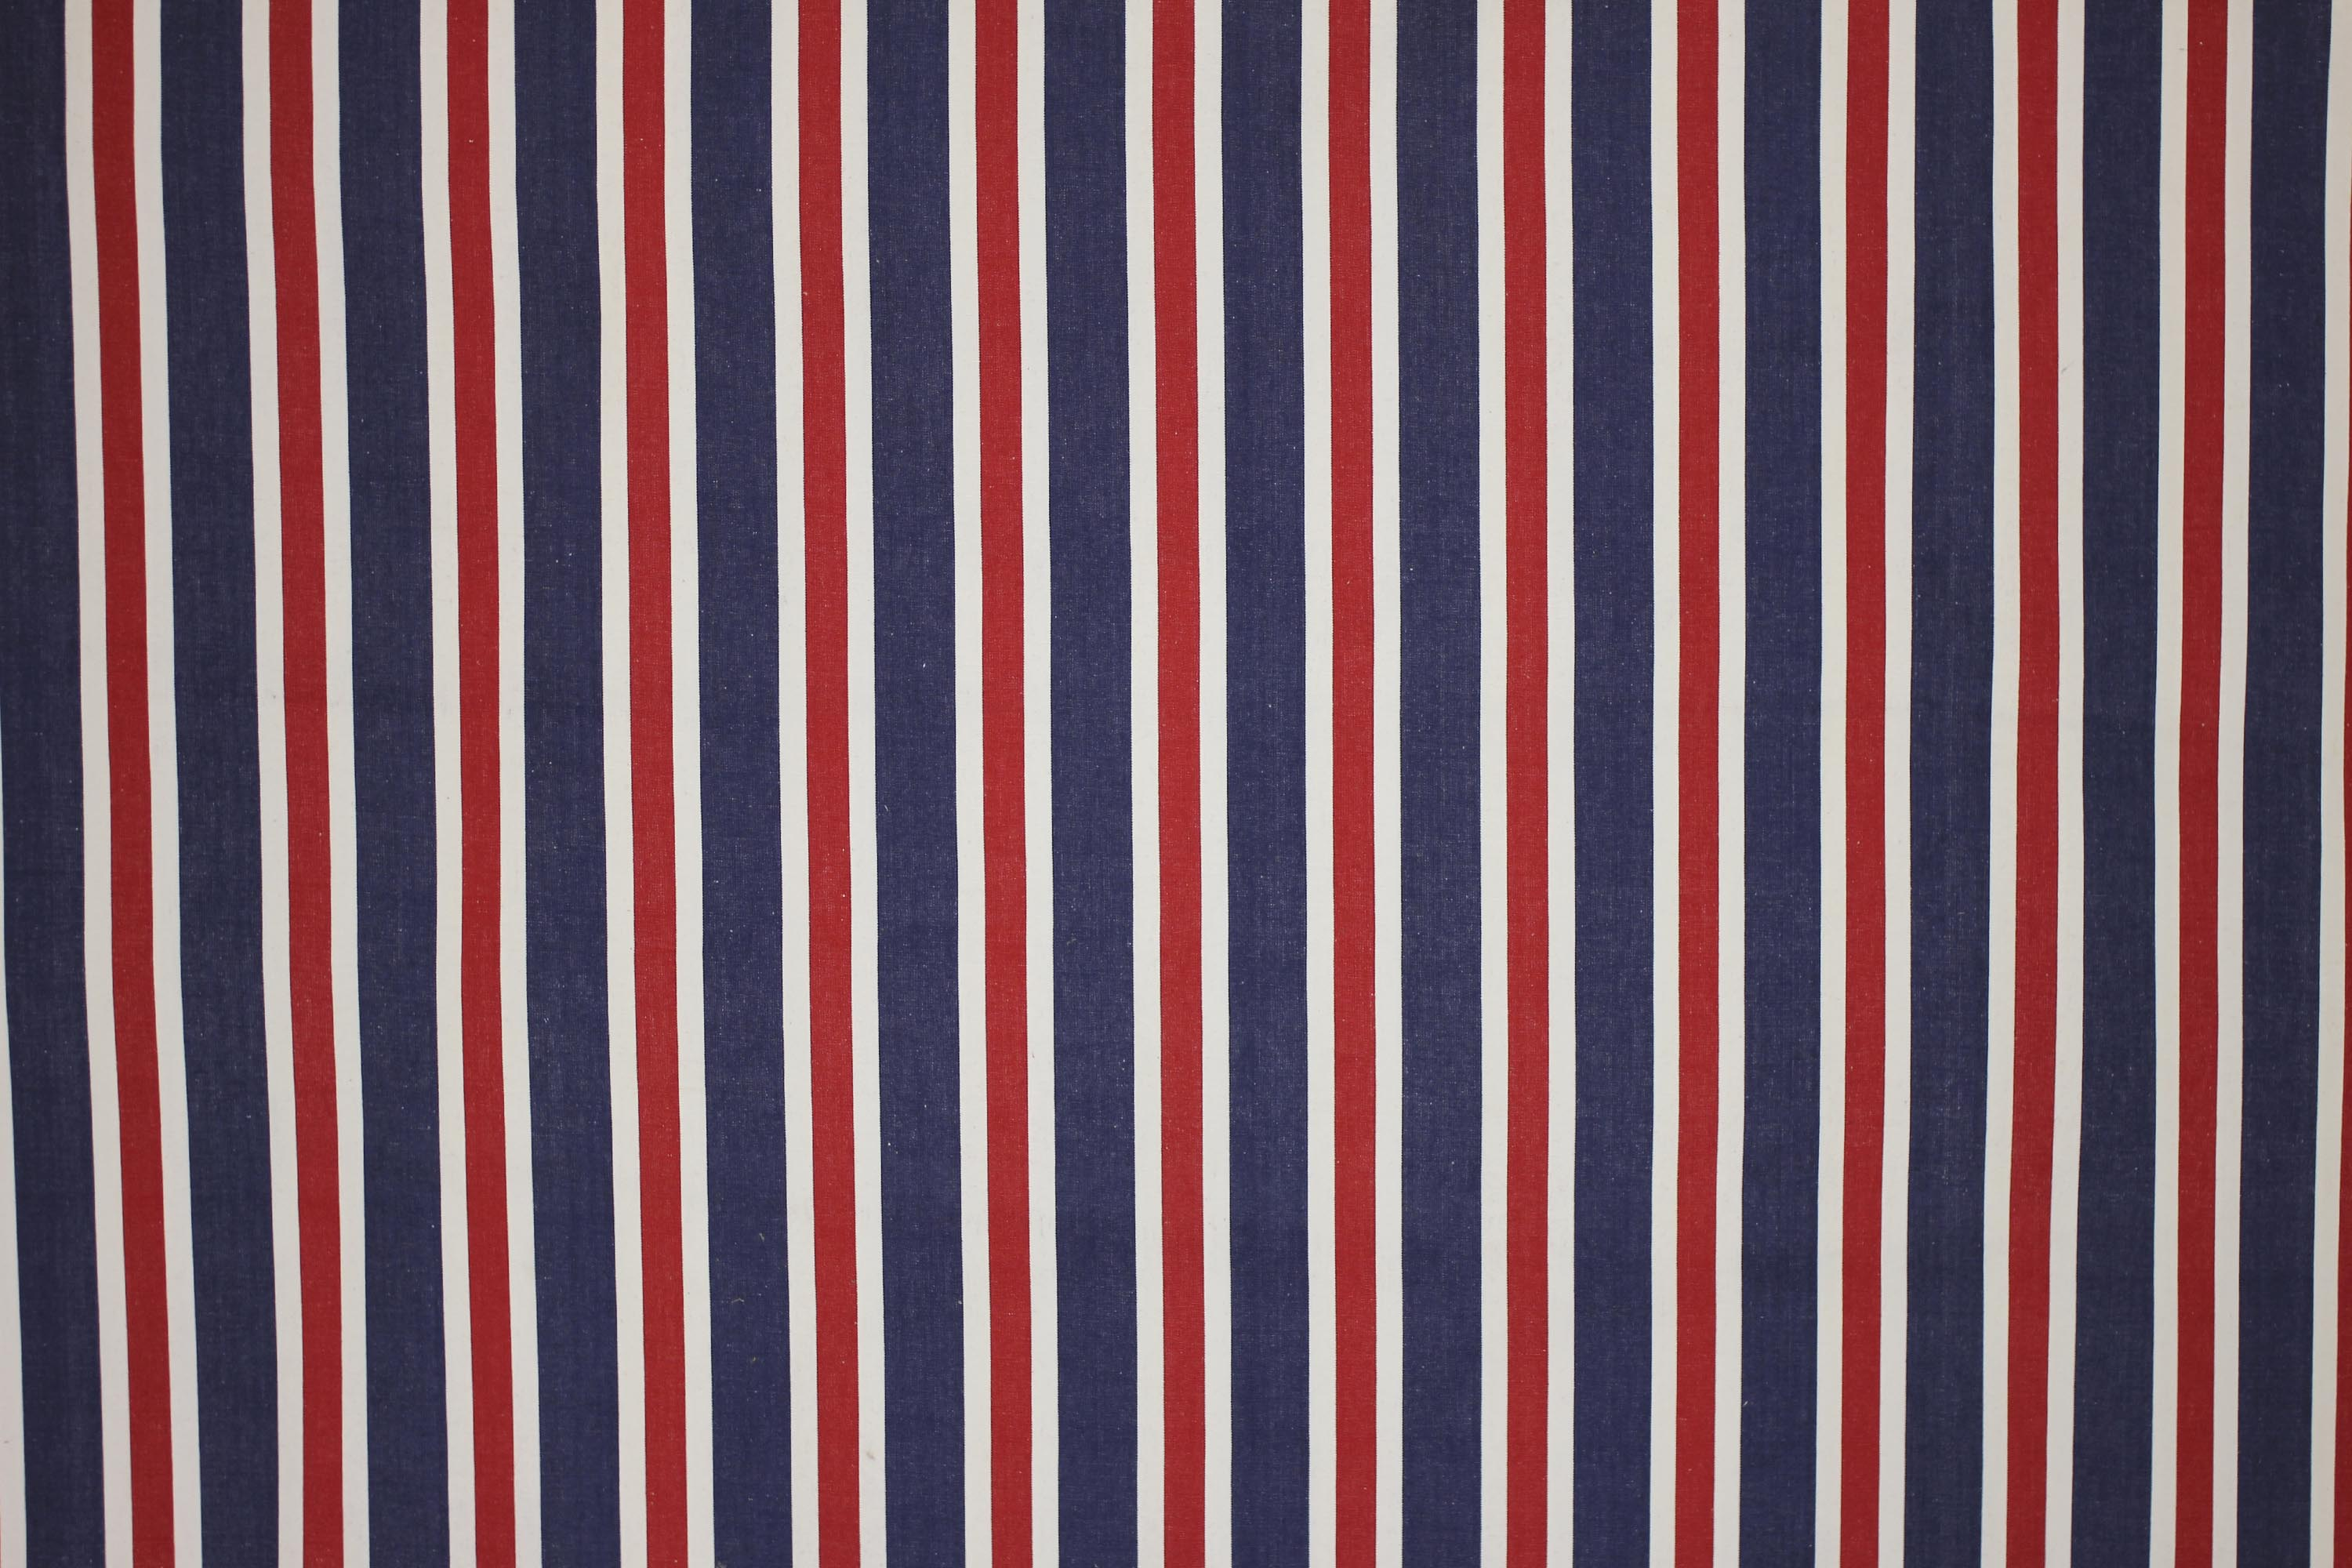 Blue Red and White Striped Fabric